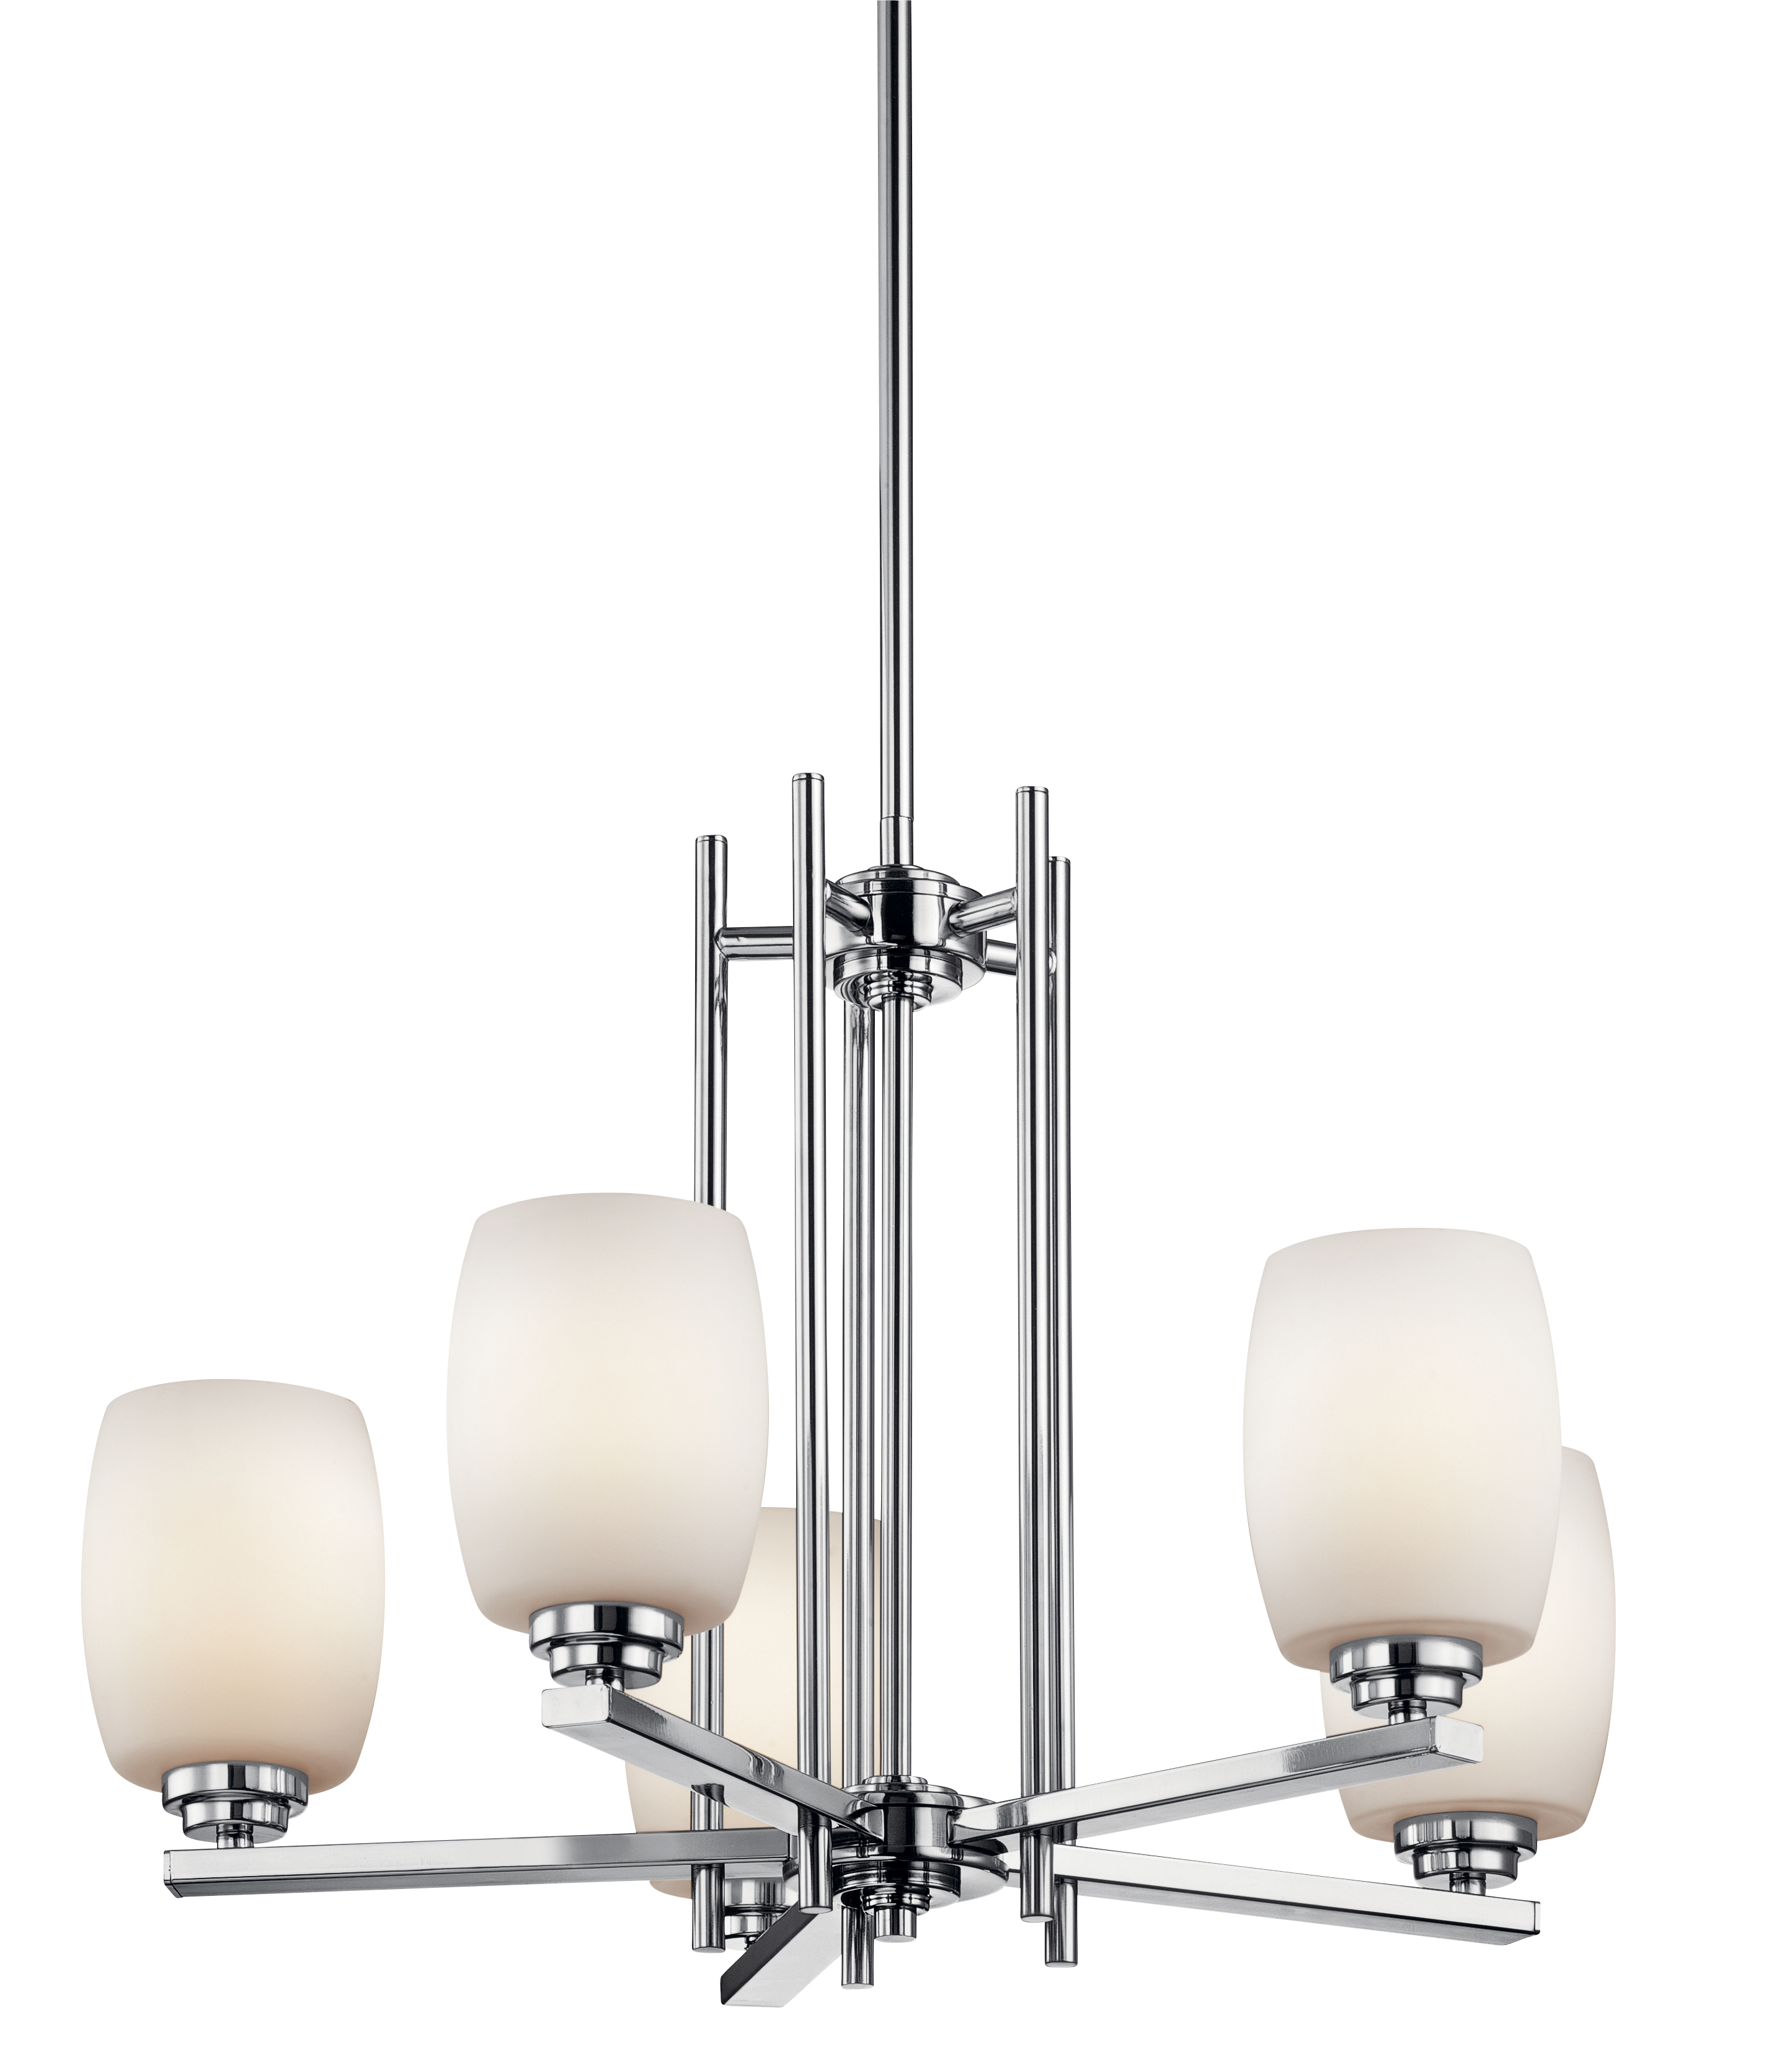 Kichler Eileen LED Chandelier with Satin Etched Cased Opal Shade - Chrome (1896CHL16)